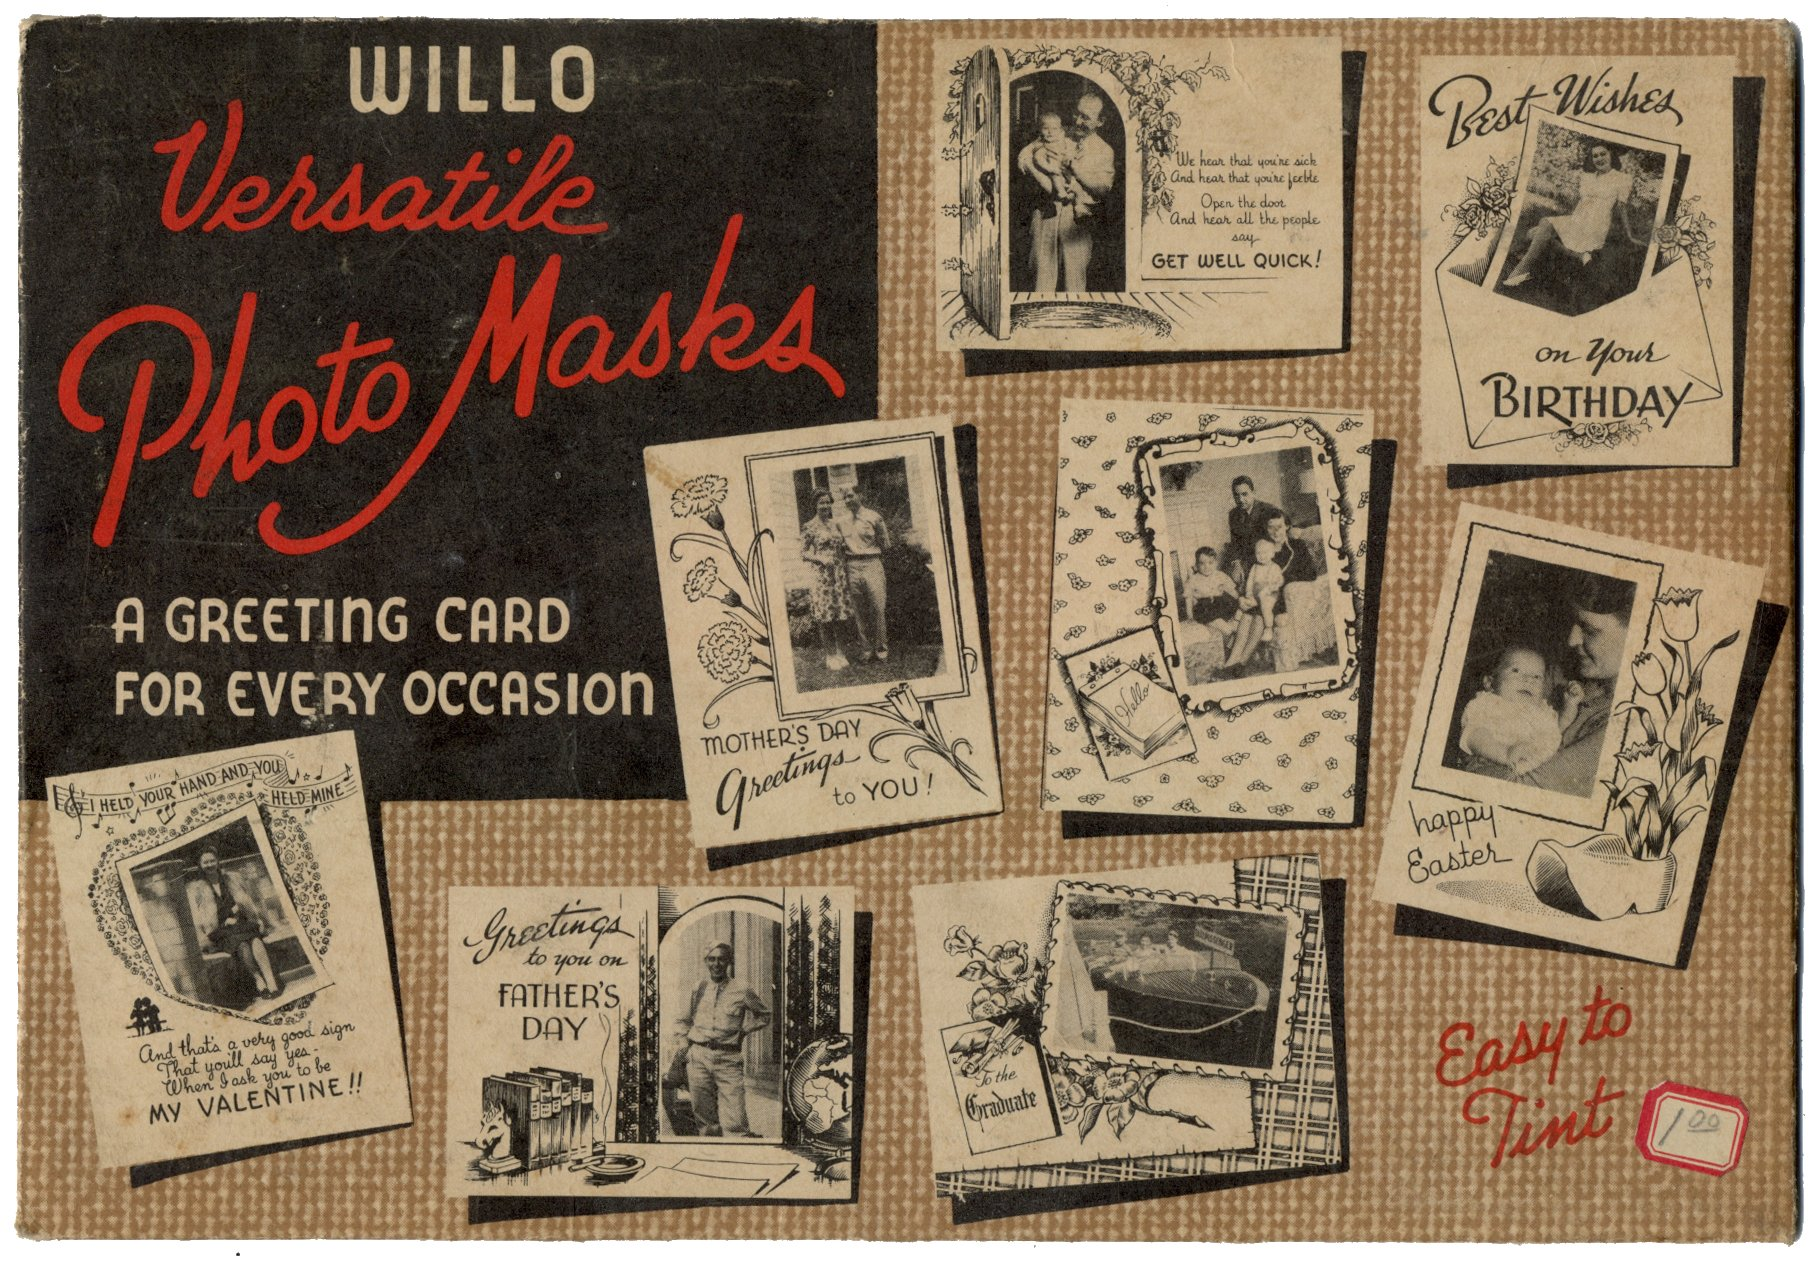 Willo Versatile Photo Masks A Greeting Card For Every Occasion